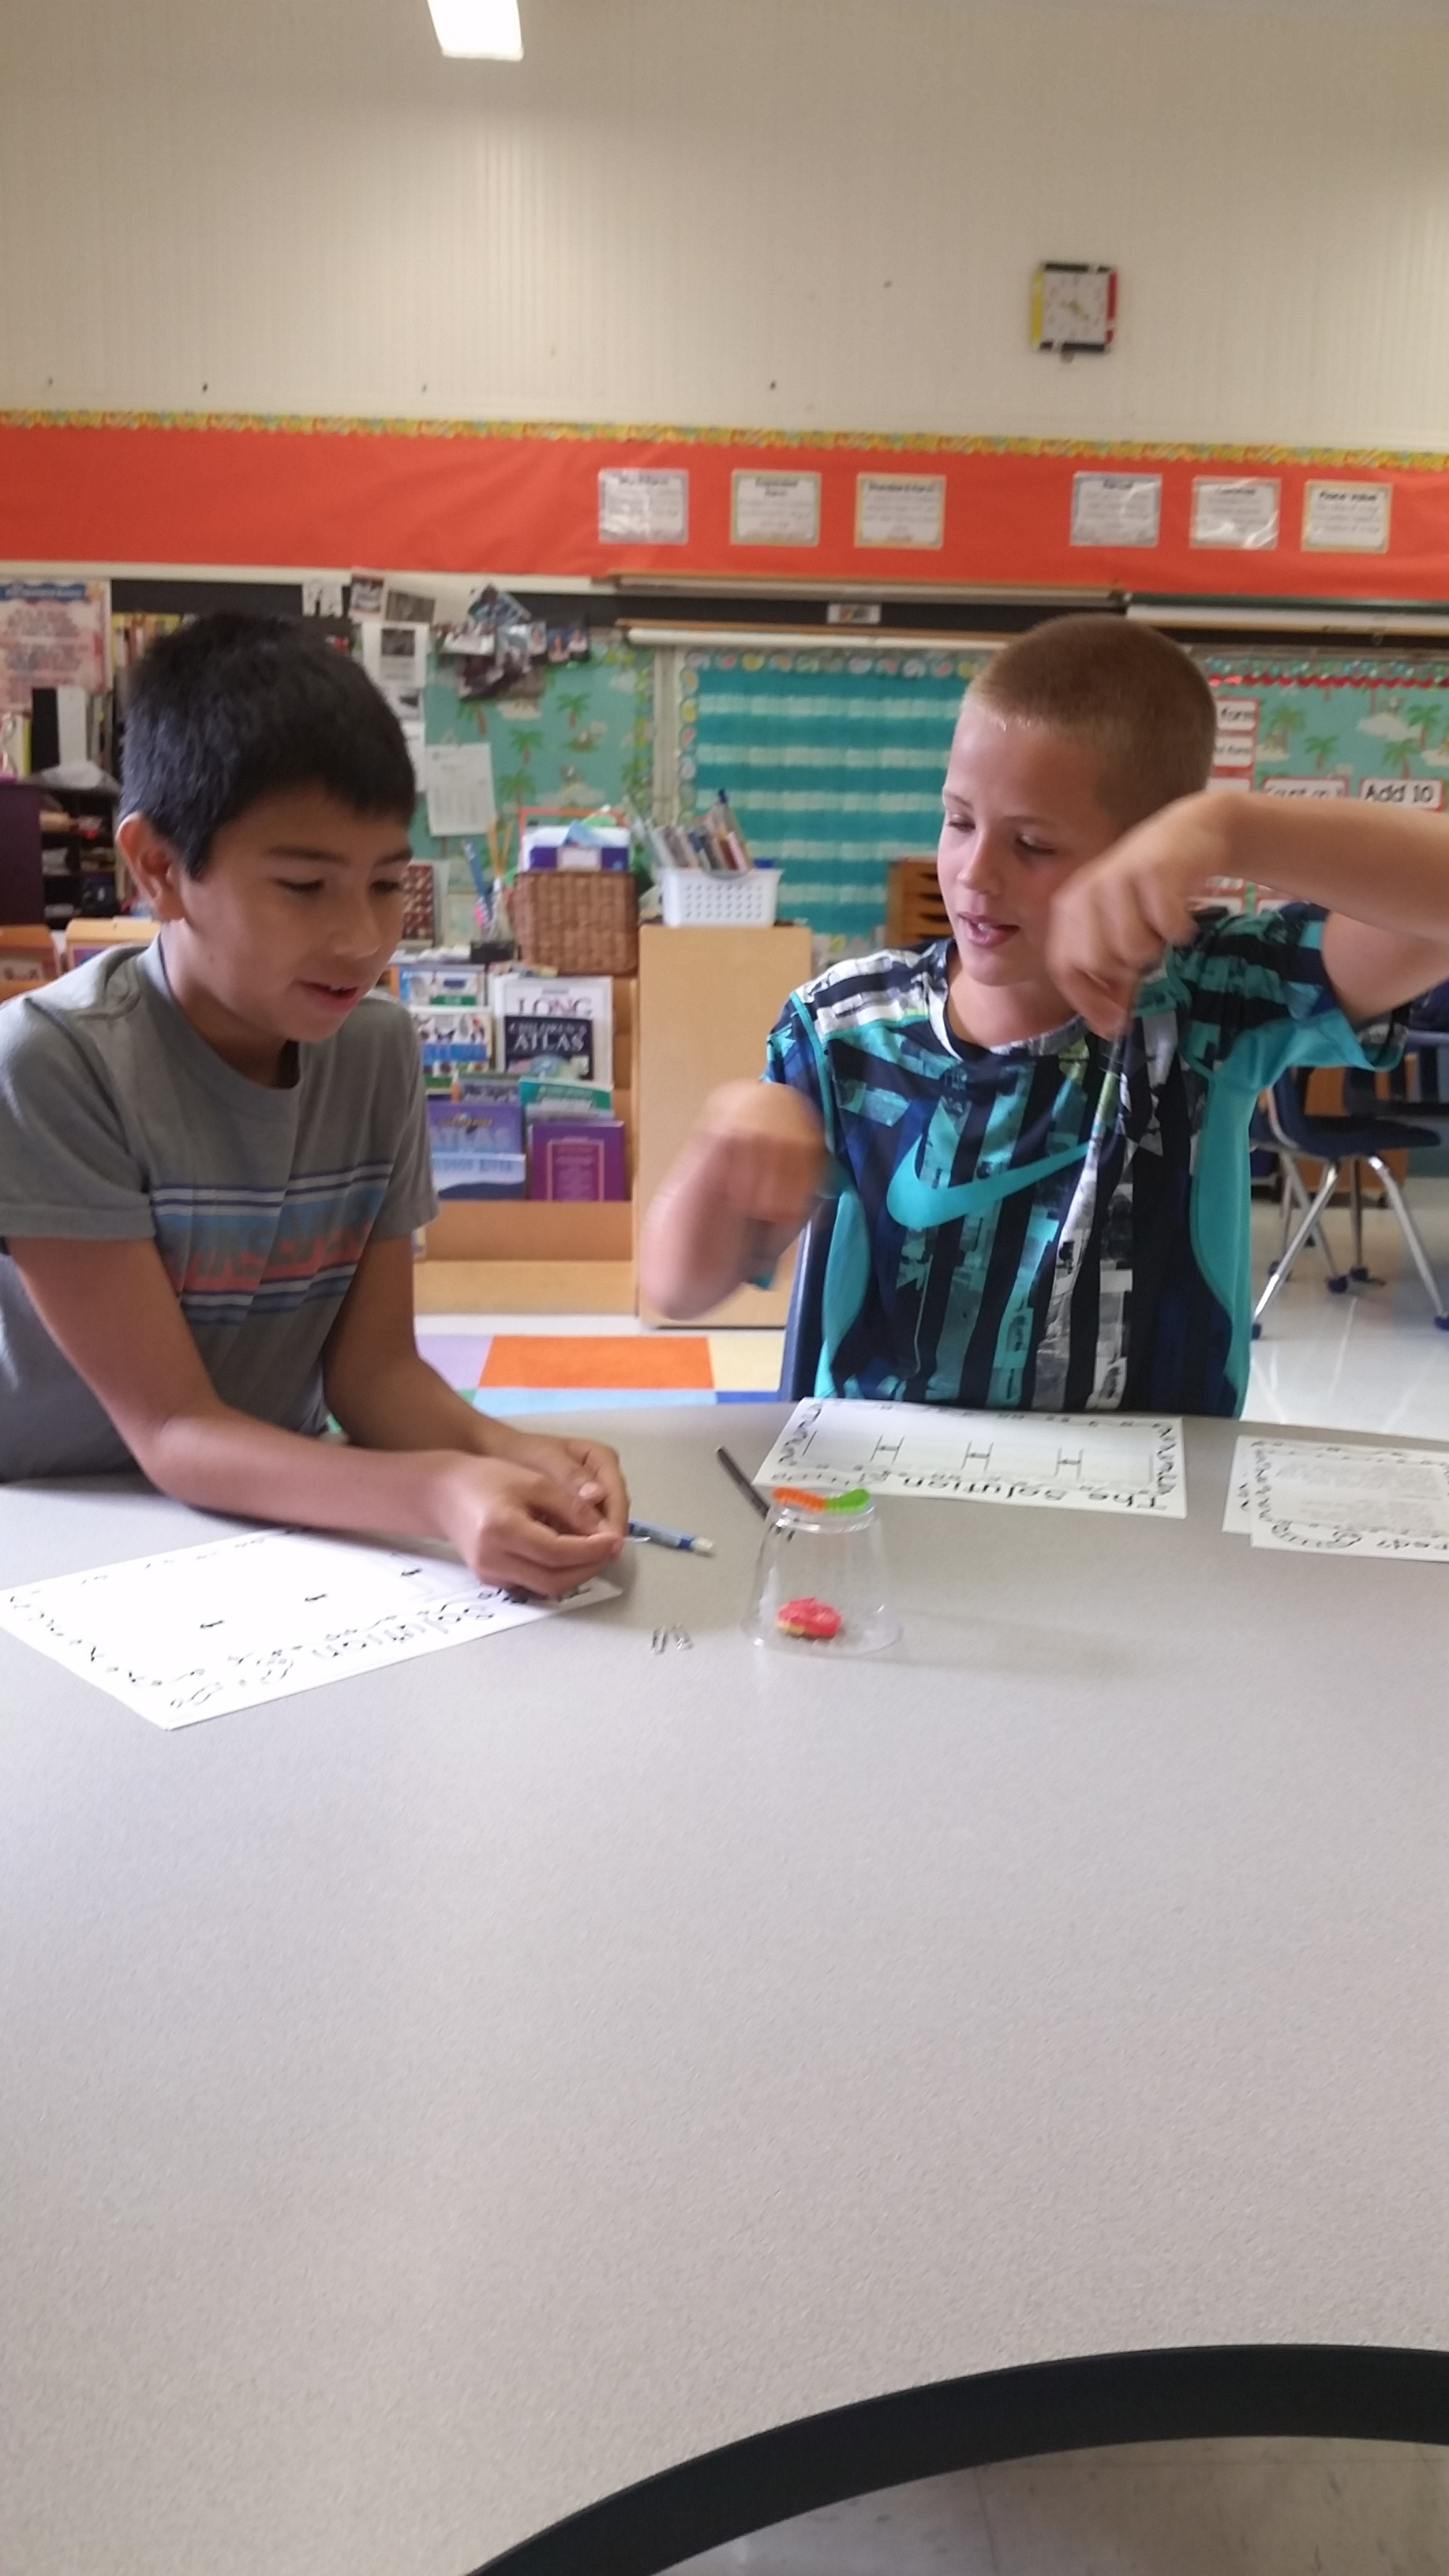 While trying to save fred, students can not touch Fred with their fingers or hands. They can only use 4 paper clips.